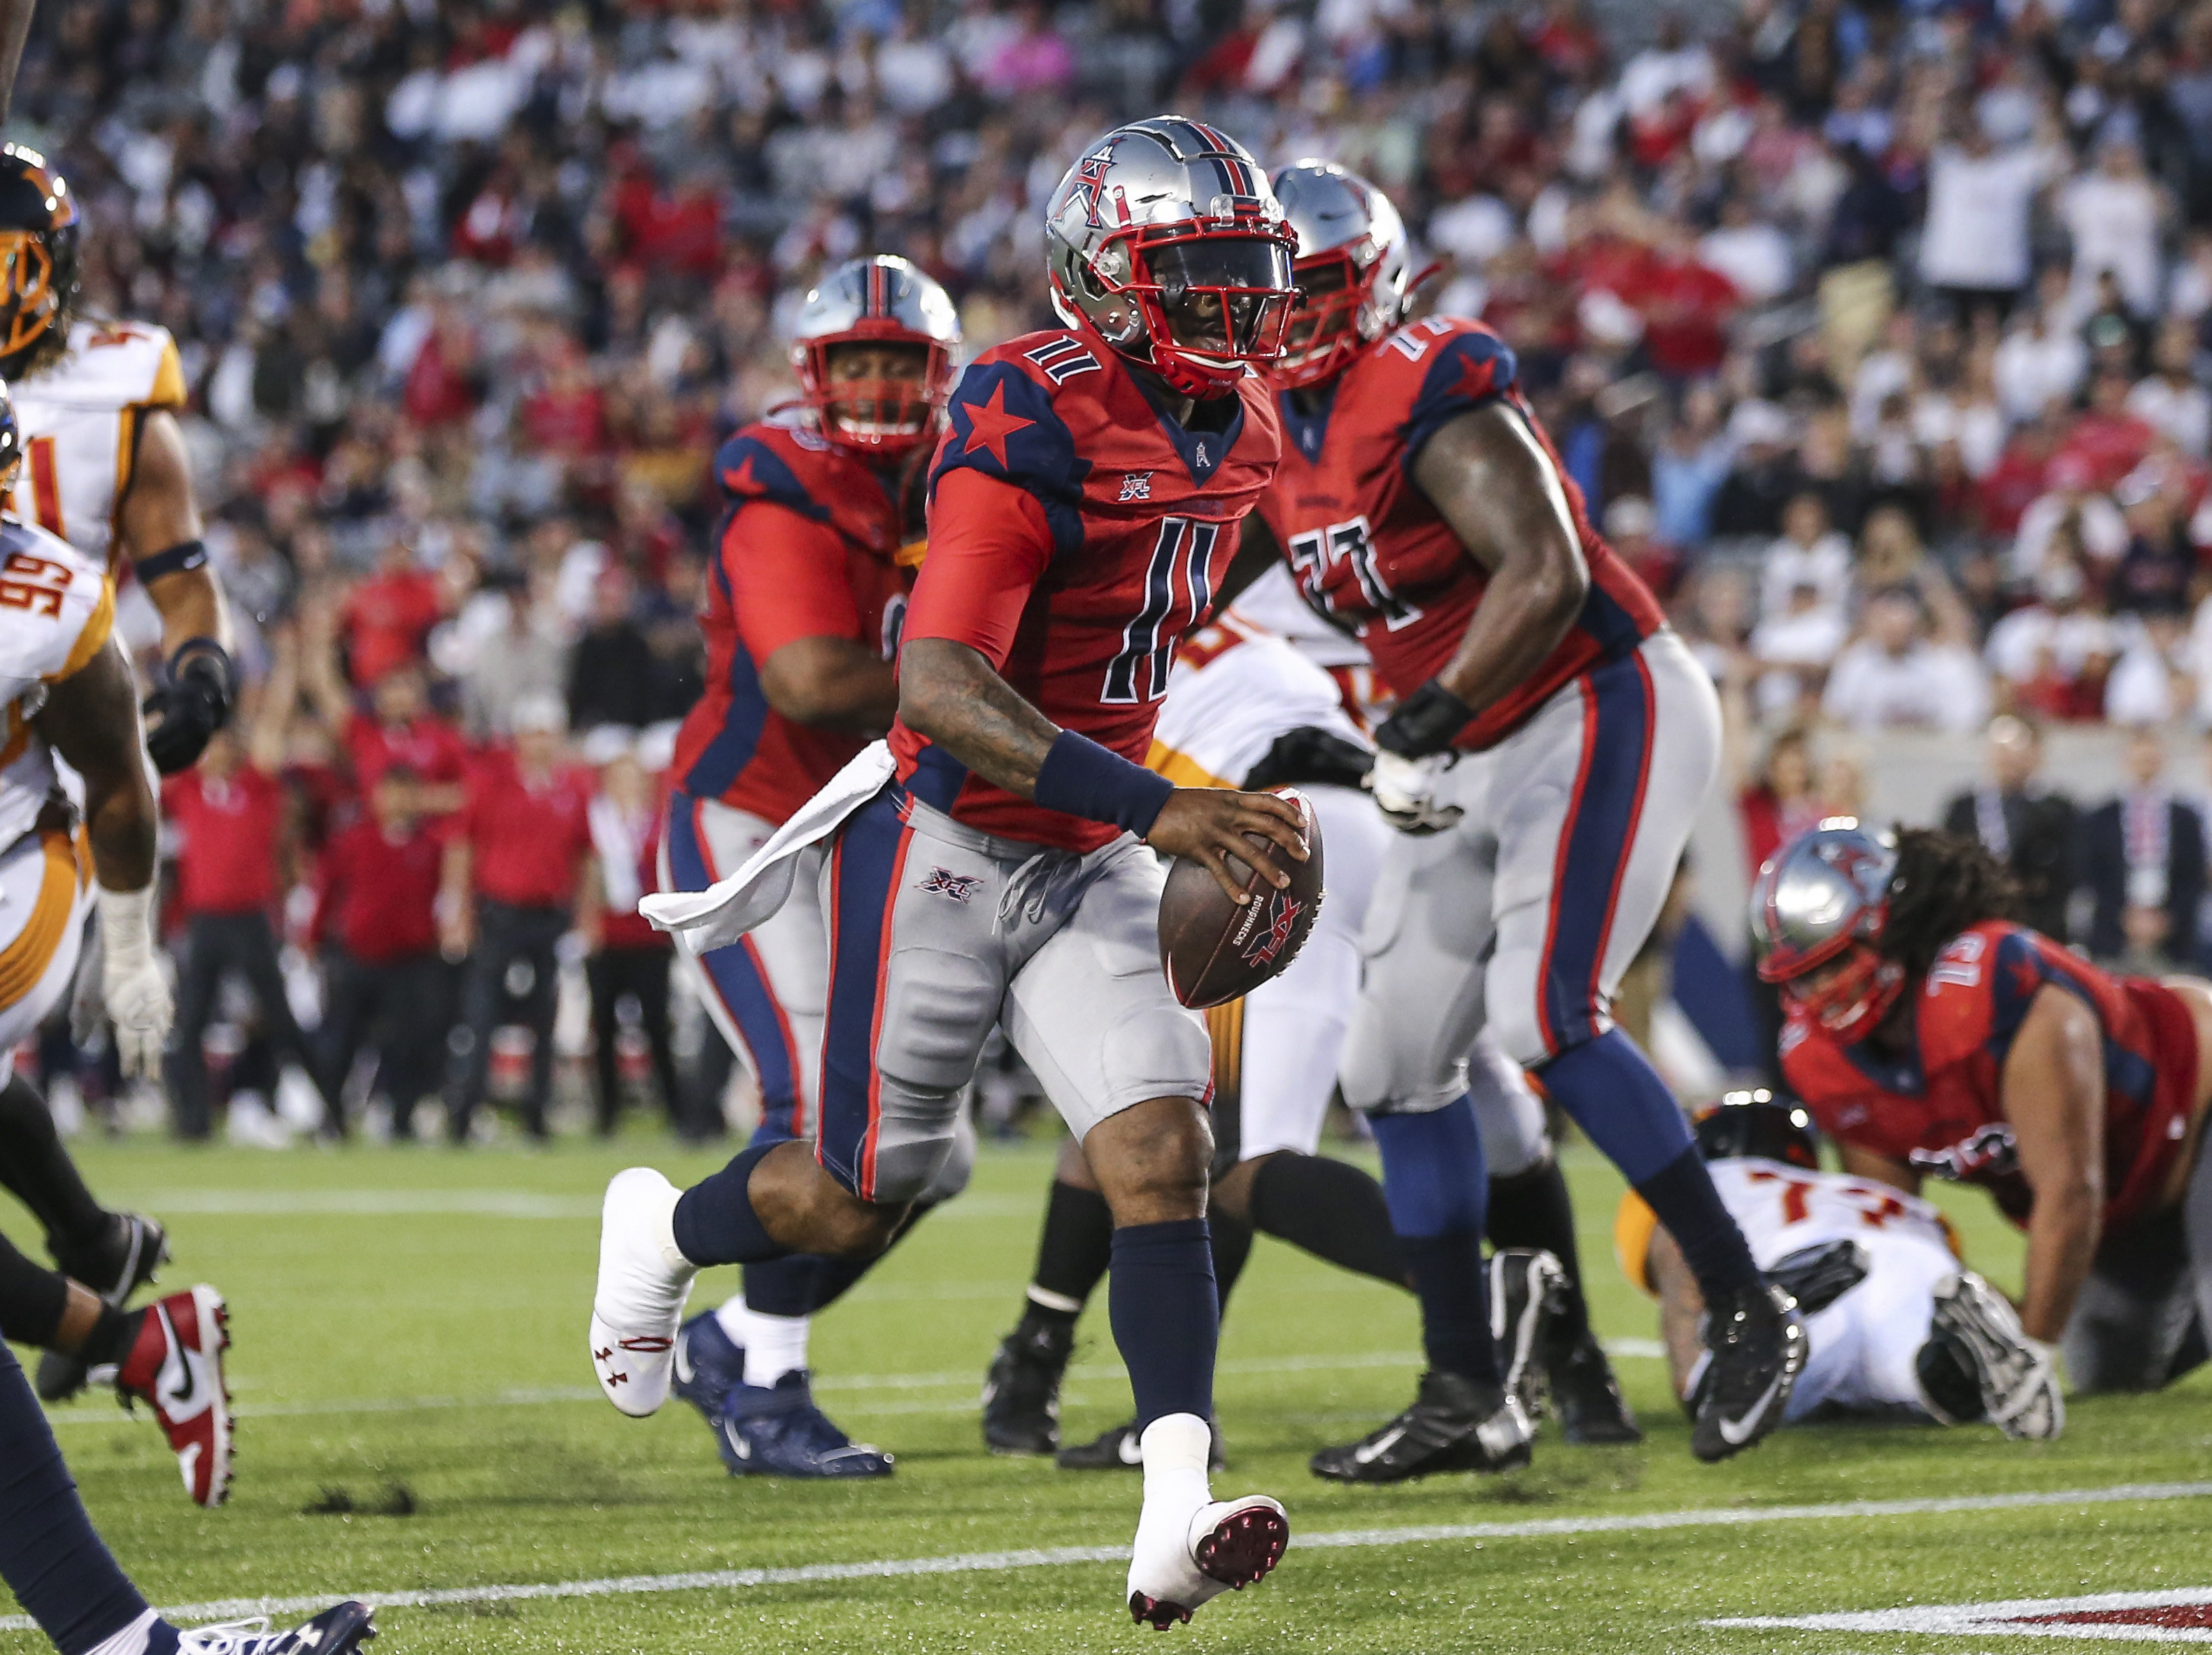 Houston Roughnecks quarterback P.J. Walker runs with the ball to score a two point conversion during the third quarter against the Los Angeles Wildcats in a XFL football game at TDECU Stadium.